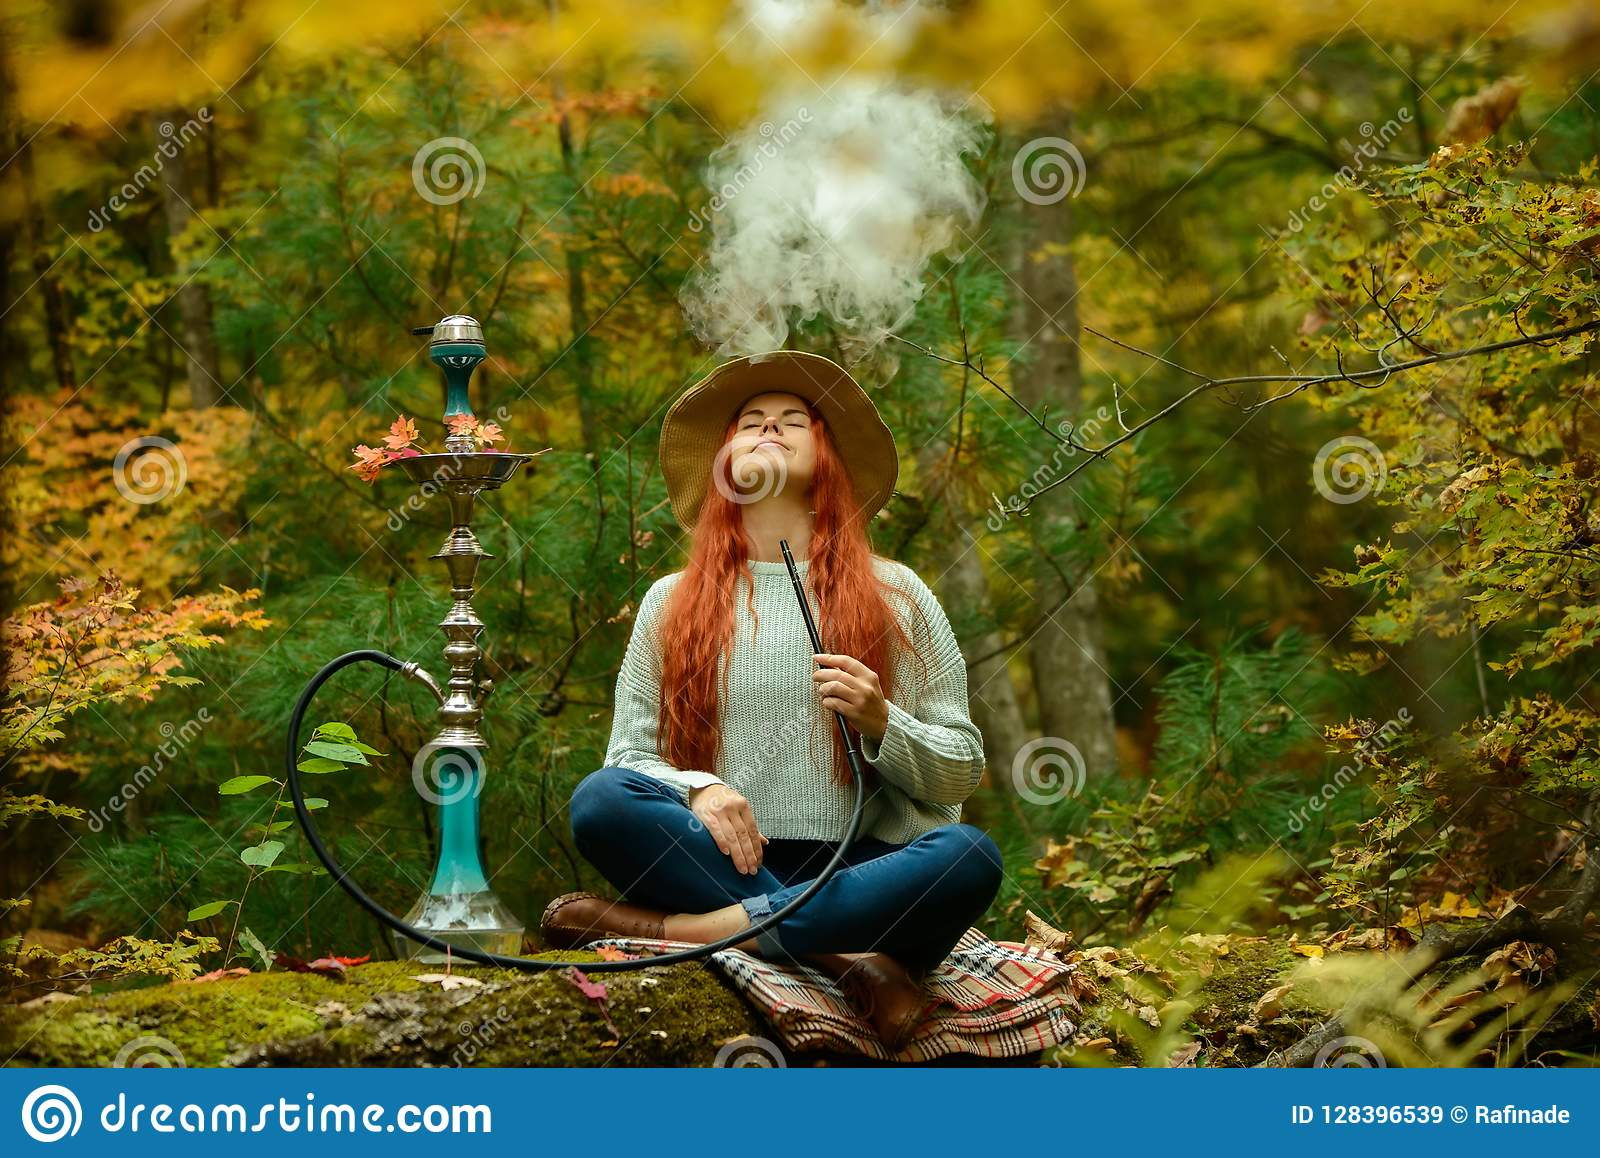 Young redhead woman smoking Hookah in forest